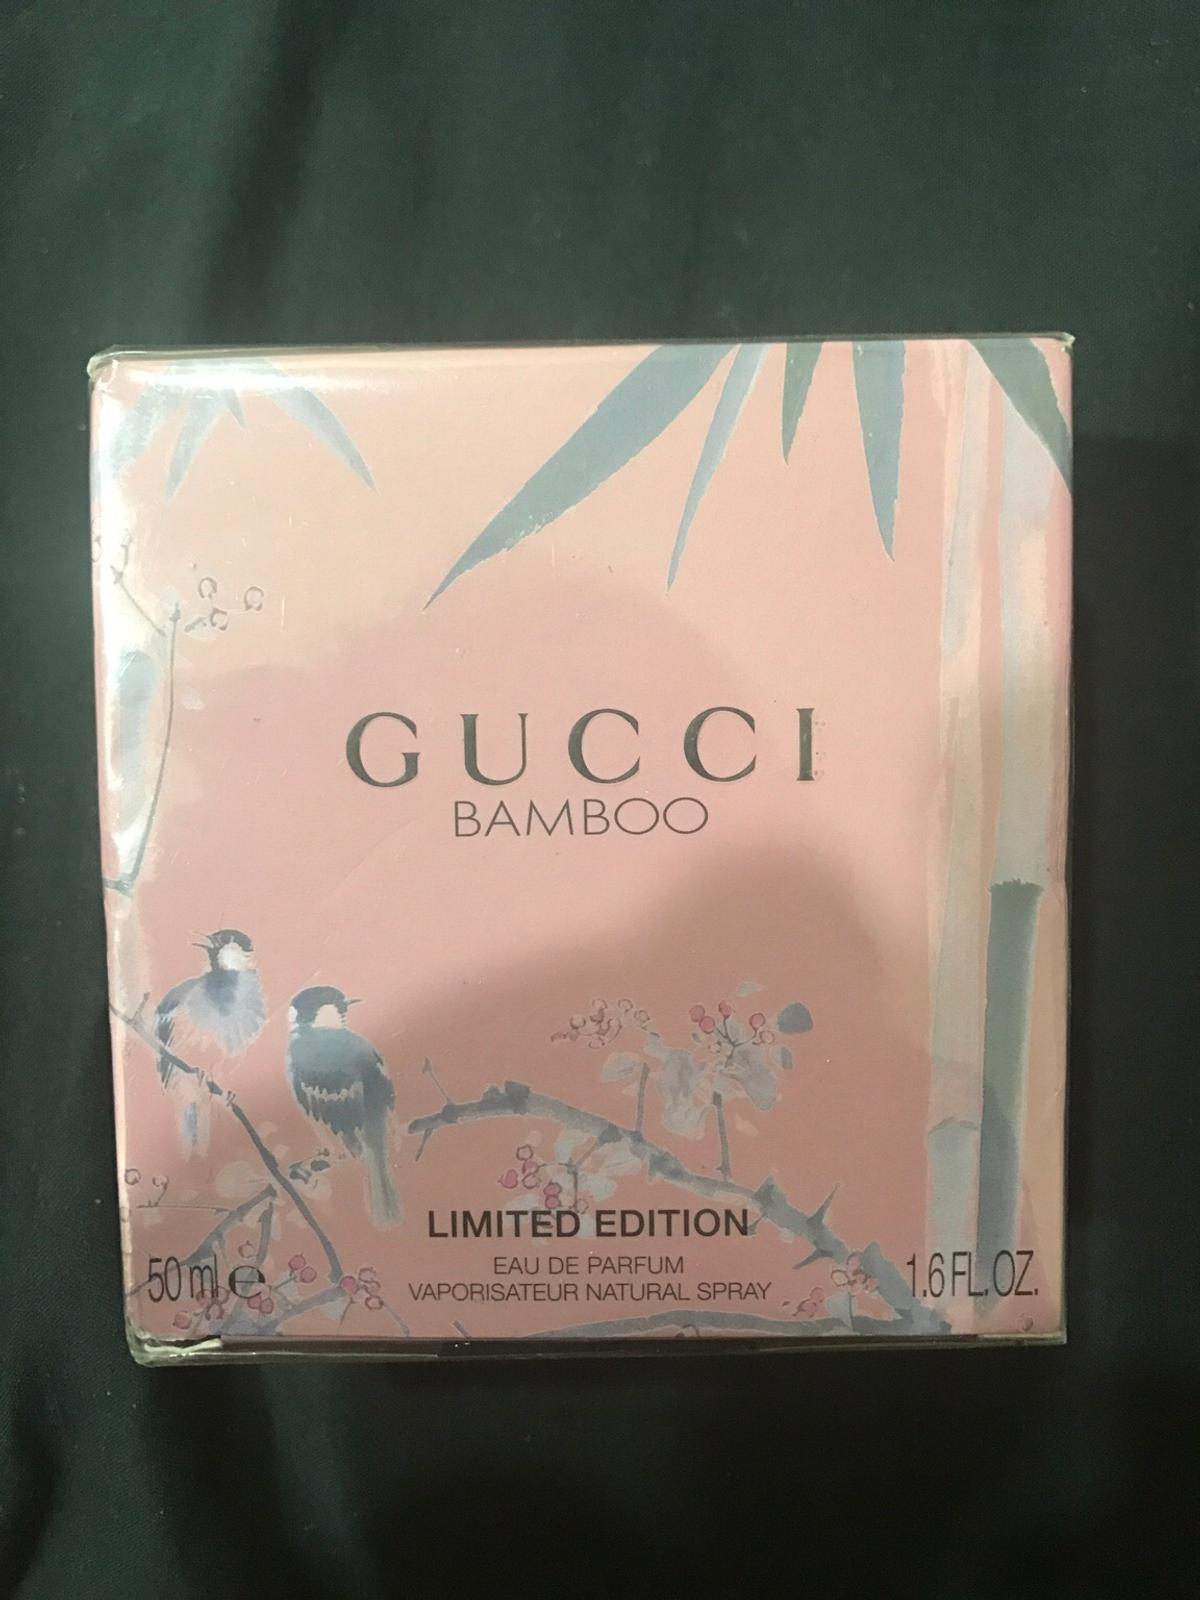 207d809f6d Gucci bamboo limited edition 50ml and 75ml